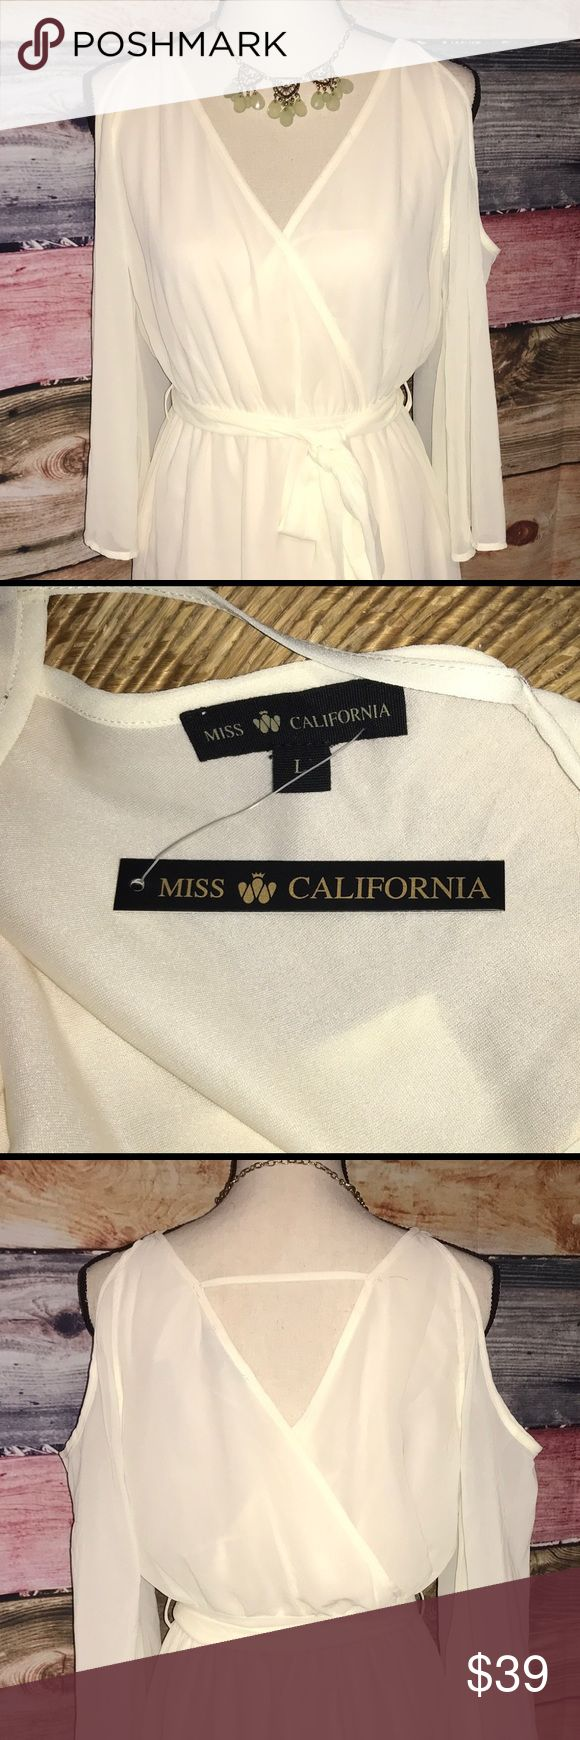 """'MISS CALIFORNIA"""" NWT IVORY COLD SHOULDER DRESS NWT MISS CALIFORNIA SHEER/LINED FAUX WRAP DRESS, THE BACK ALSO IS FAUX WRAP. ELASTIC WAIST W/ LOOPS FOR EXTRA LONG TIE. BELL SLEEVES. BEAUTIFUL DRESS Miss California Dresses Midi"""